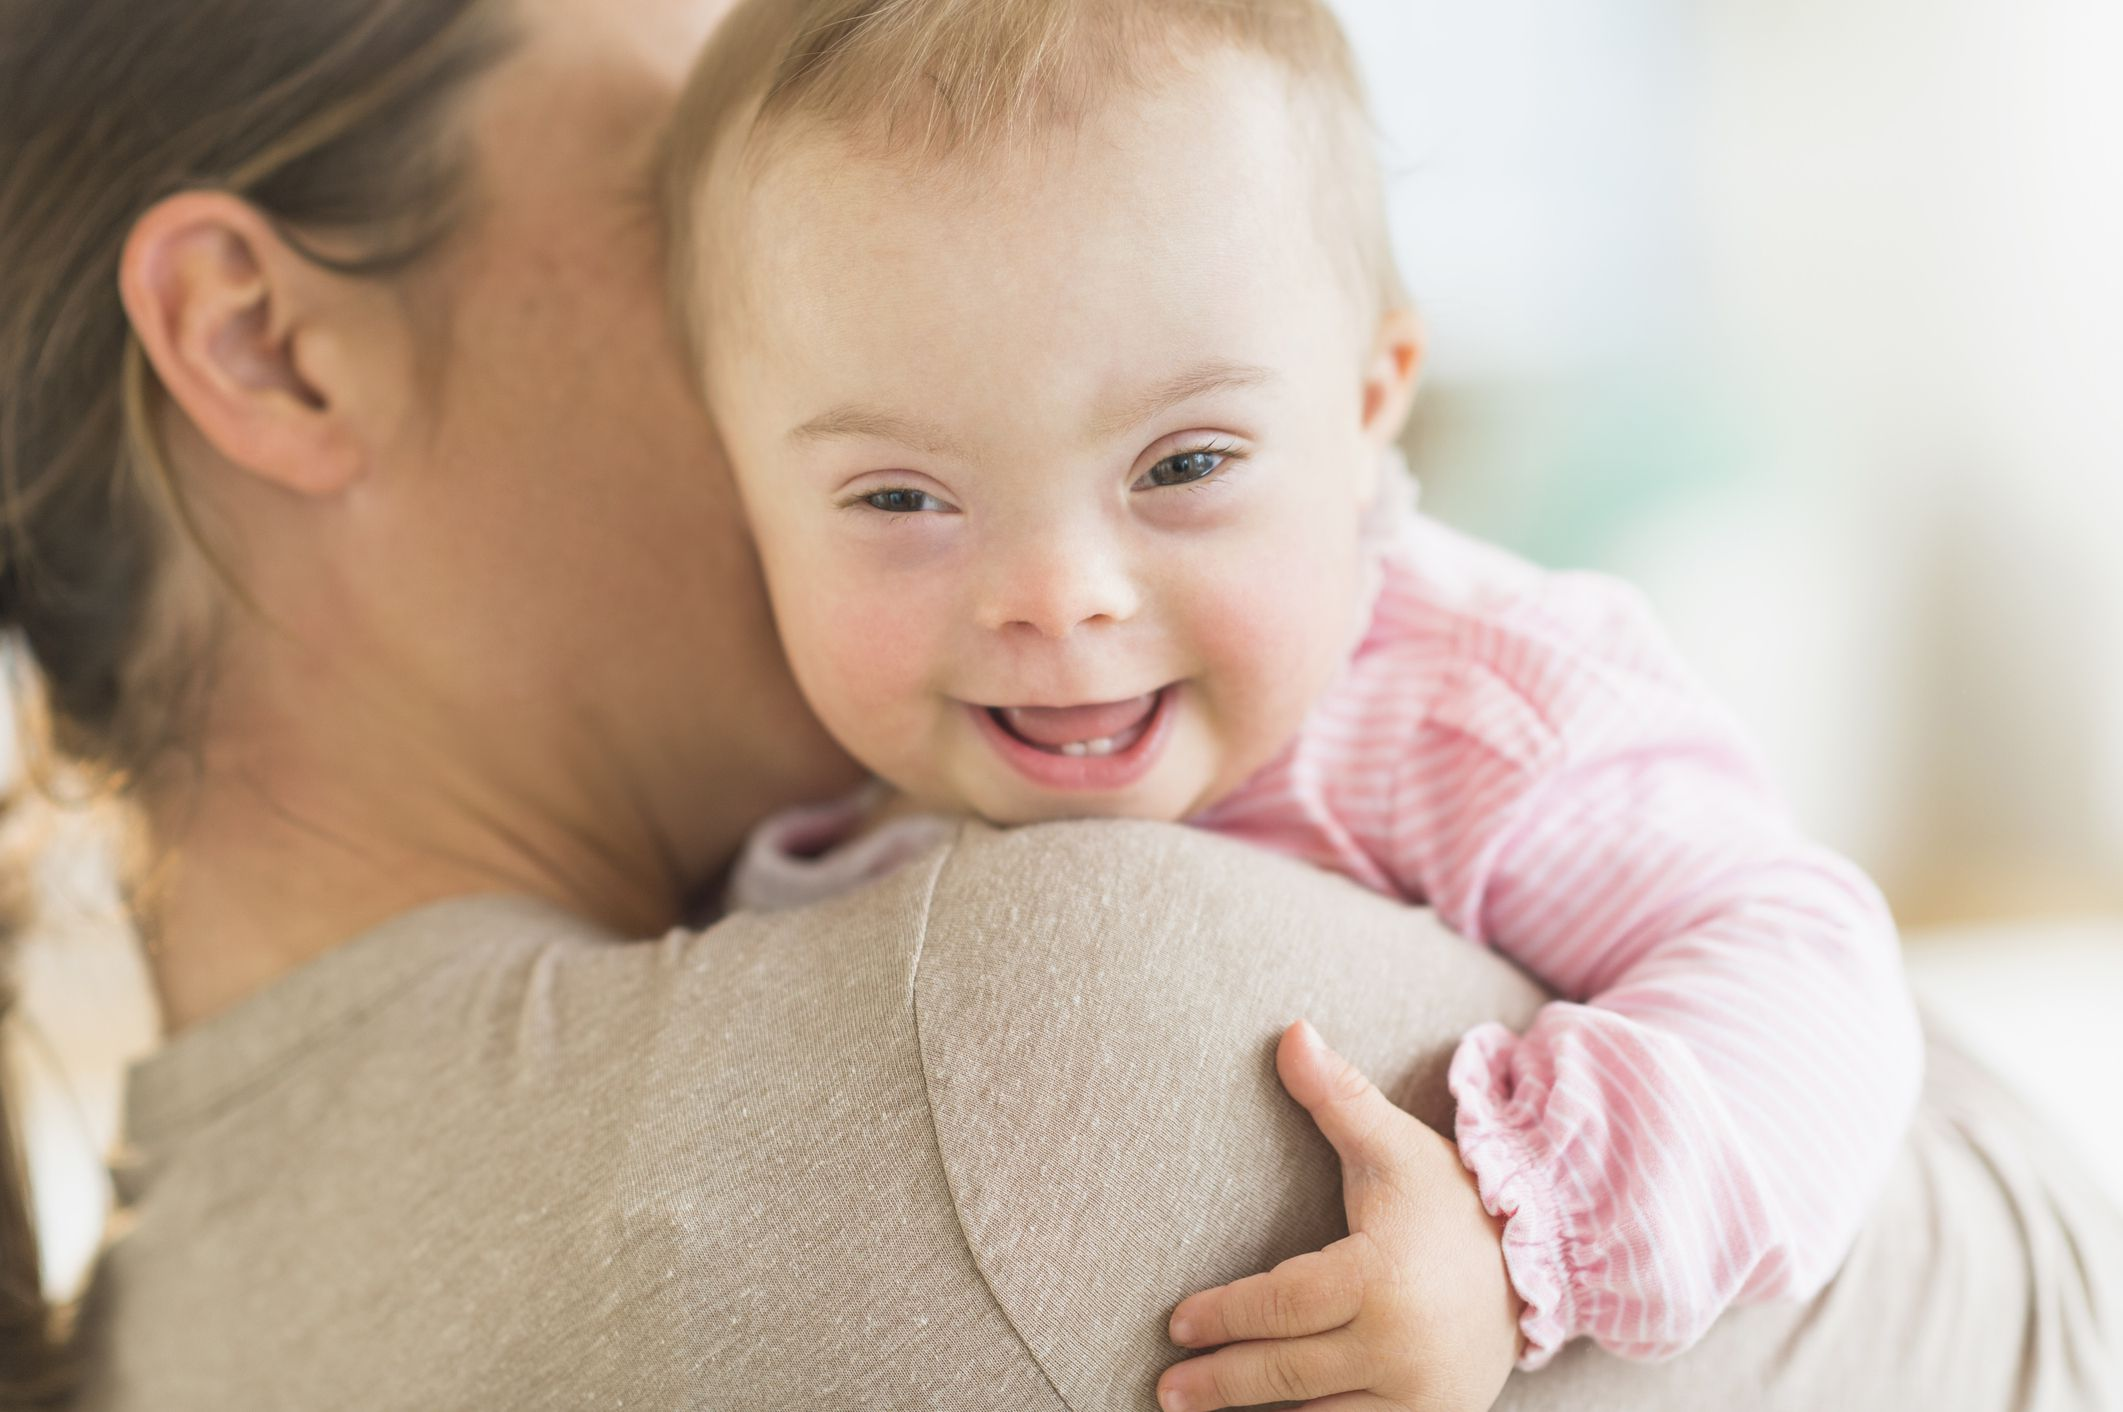 Breastfeeding a Child With Down Syndrome